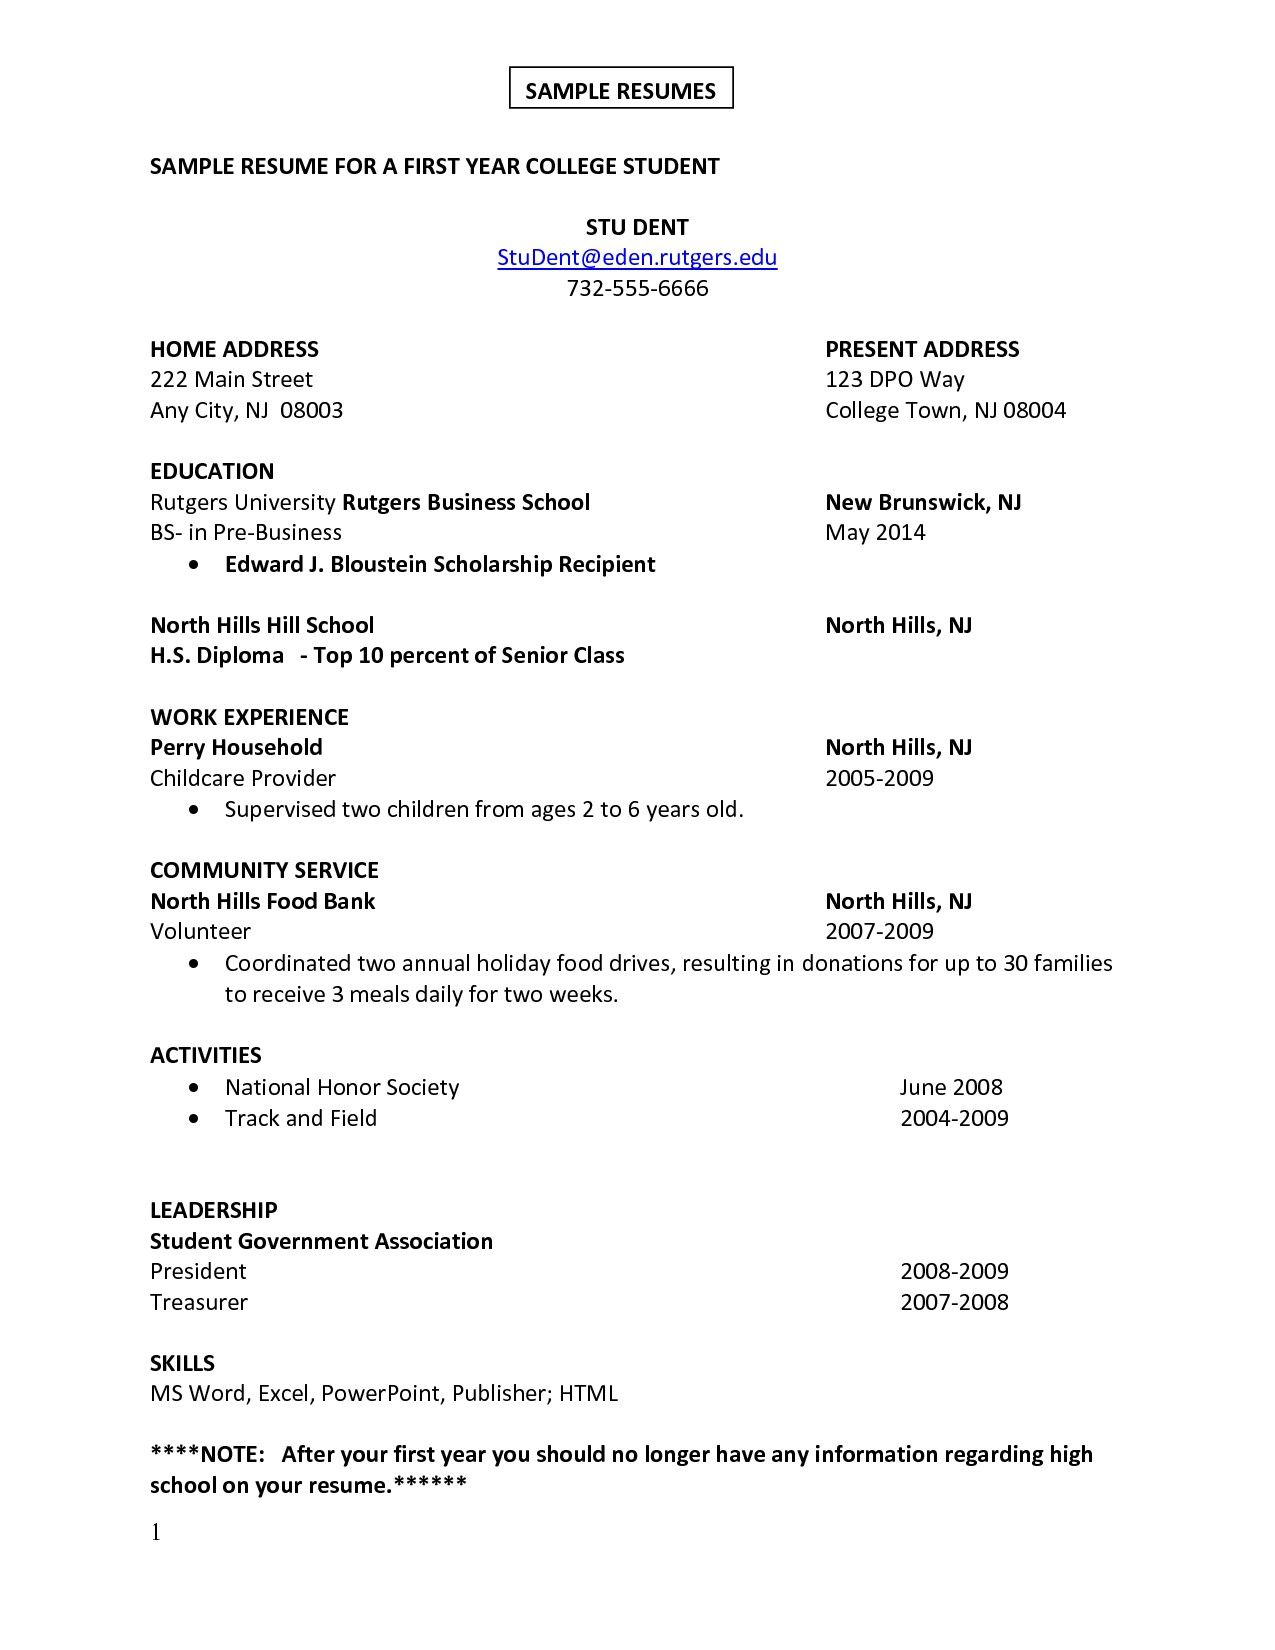 How To Write A Resume For A First Job First Job Resume Google Search Resume Sample Resume